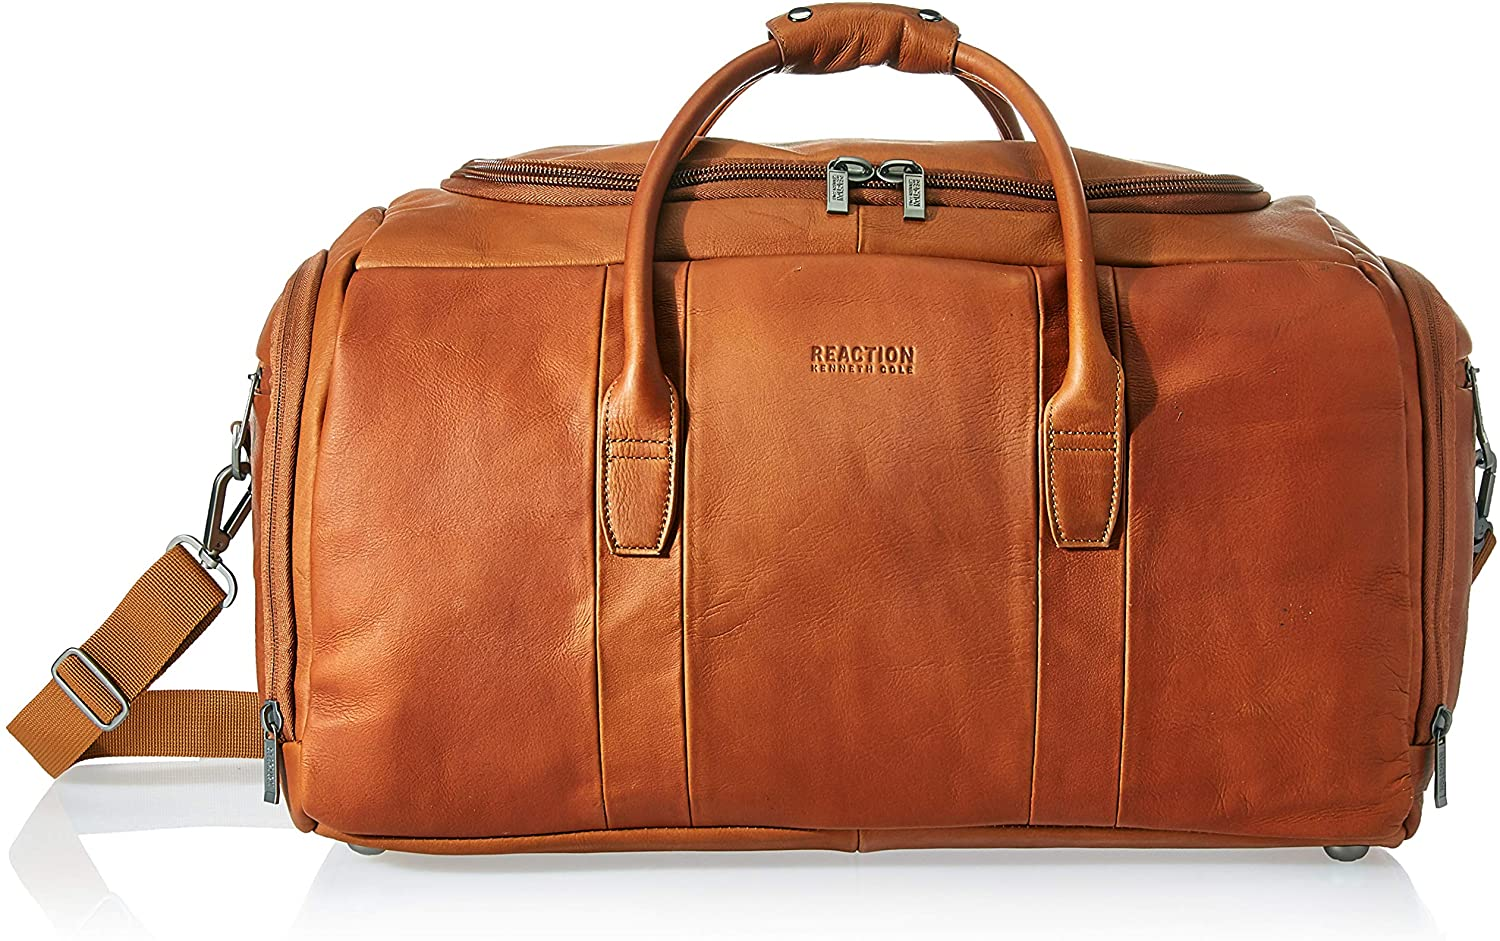 7. Kenneth Cole Reaction Travel Duffel Bag